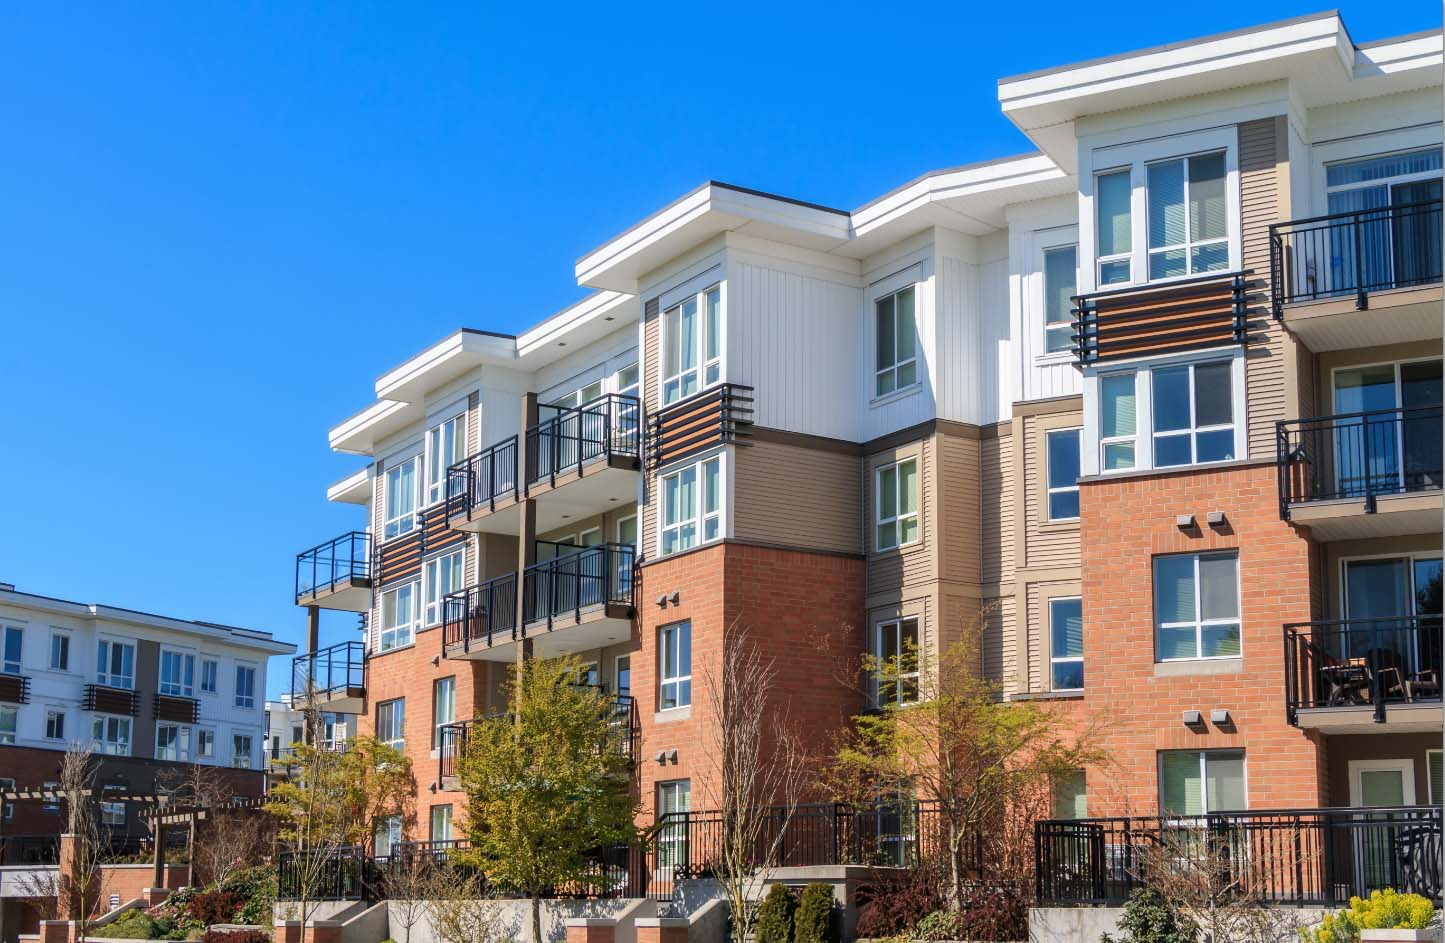 Commercial Insurance in Sammamish